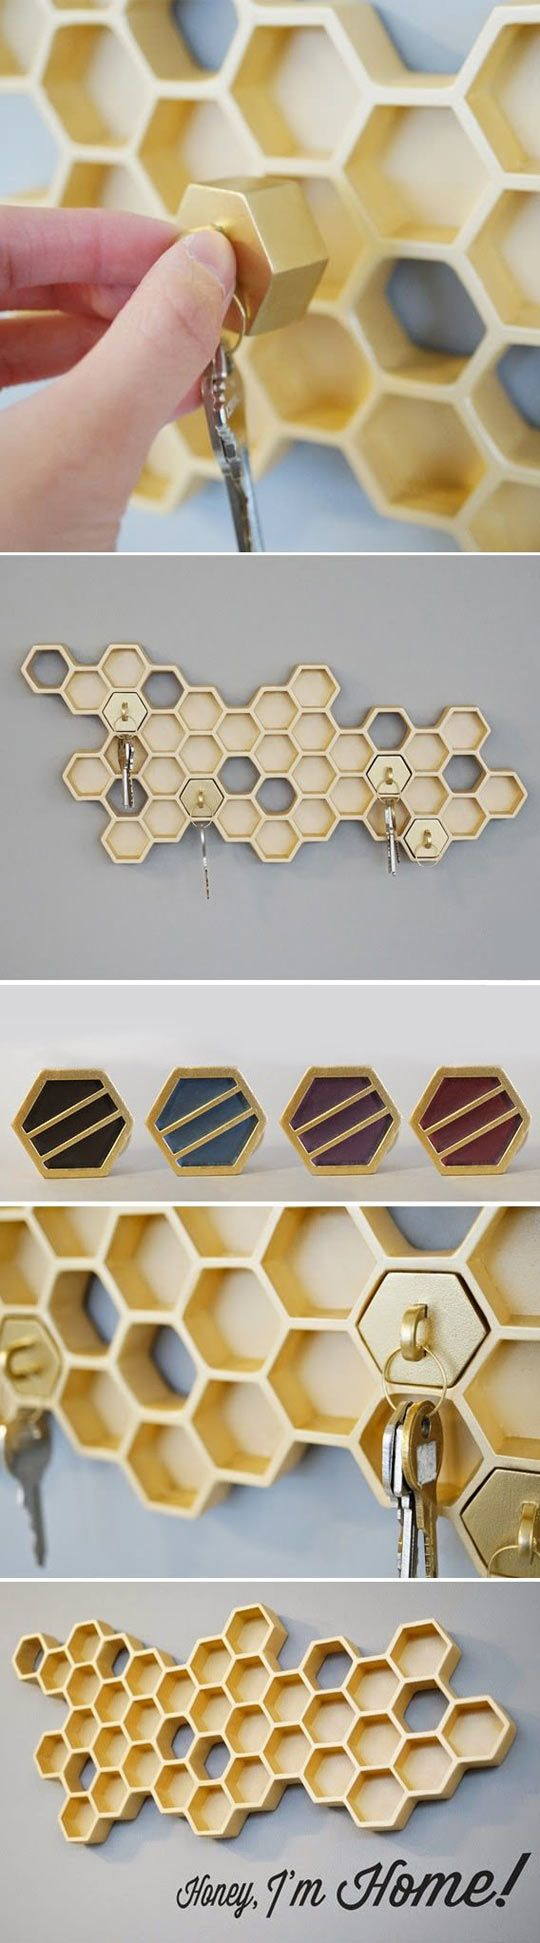 """Honey I'm home!"" key rack concept by two talented #industrial_design students Malorie Pangilinan and Luz Cabrera."